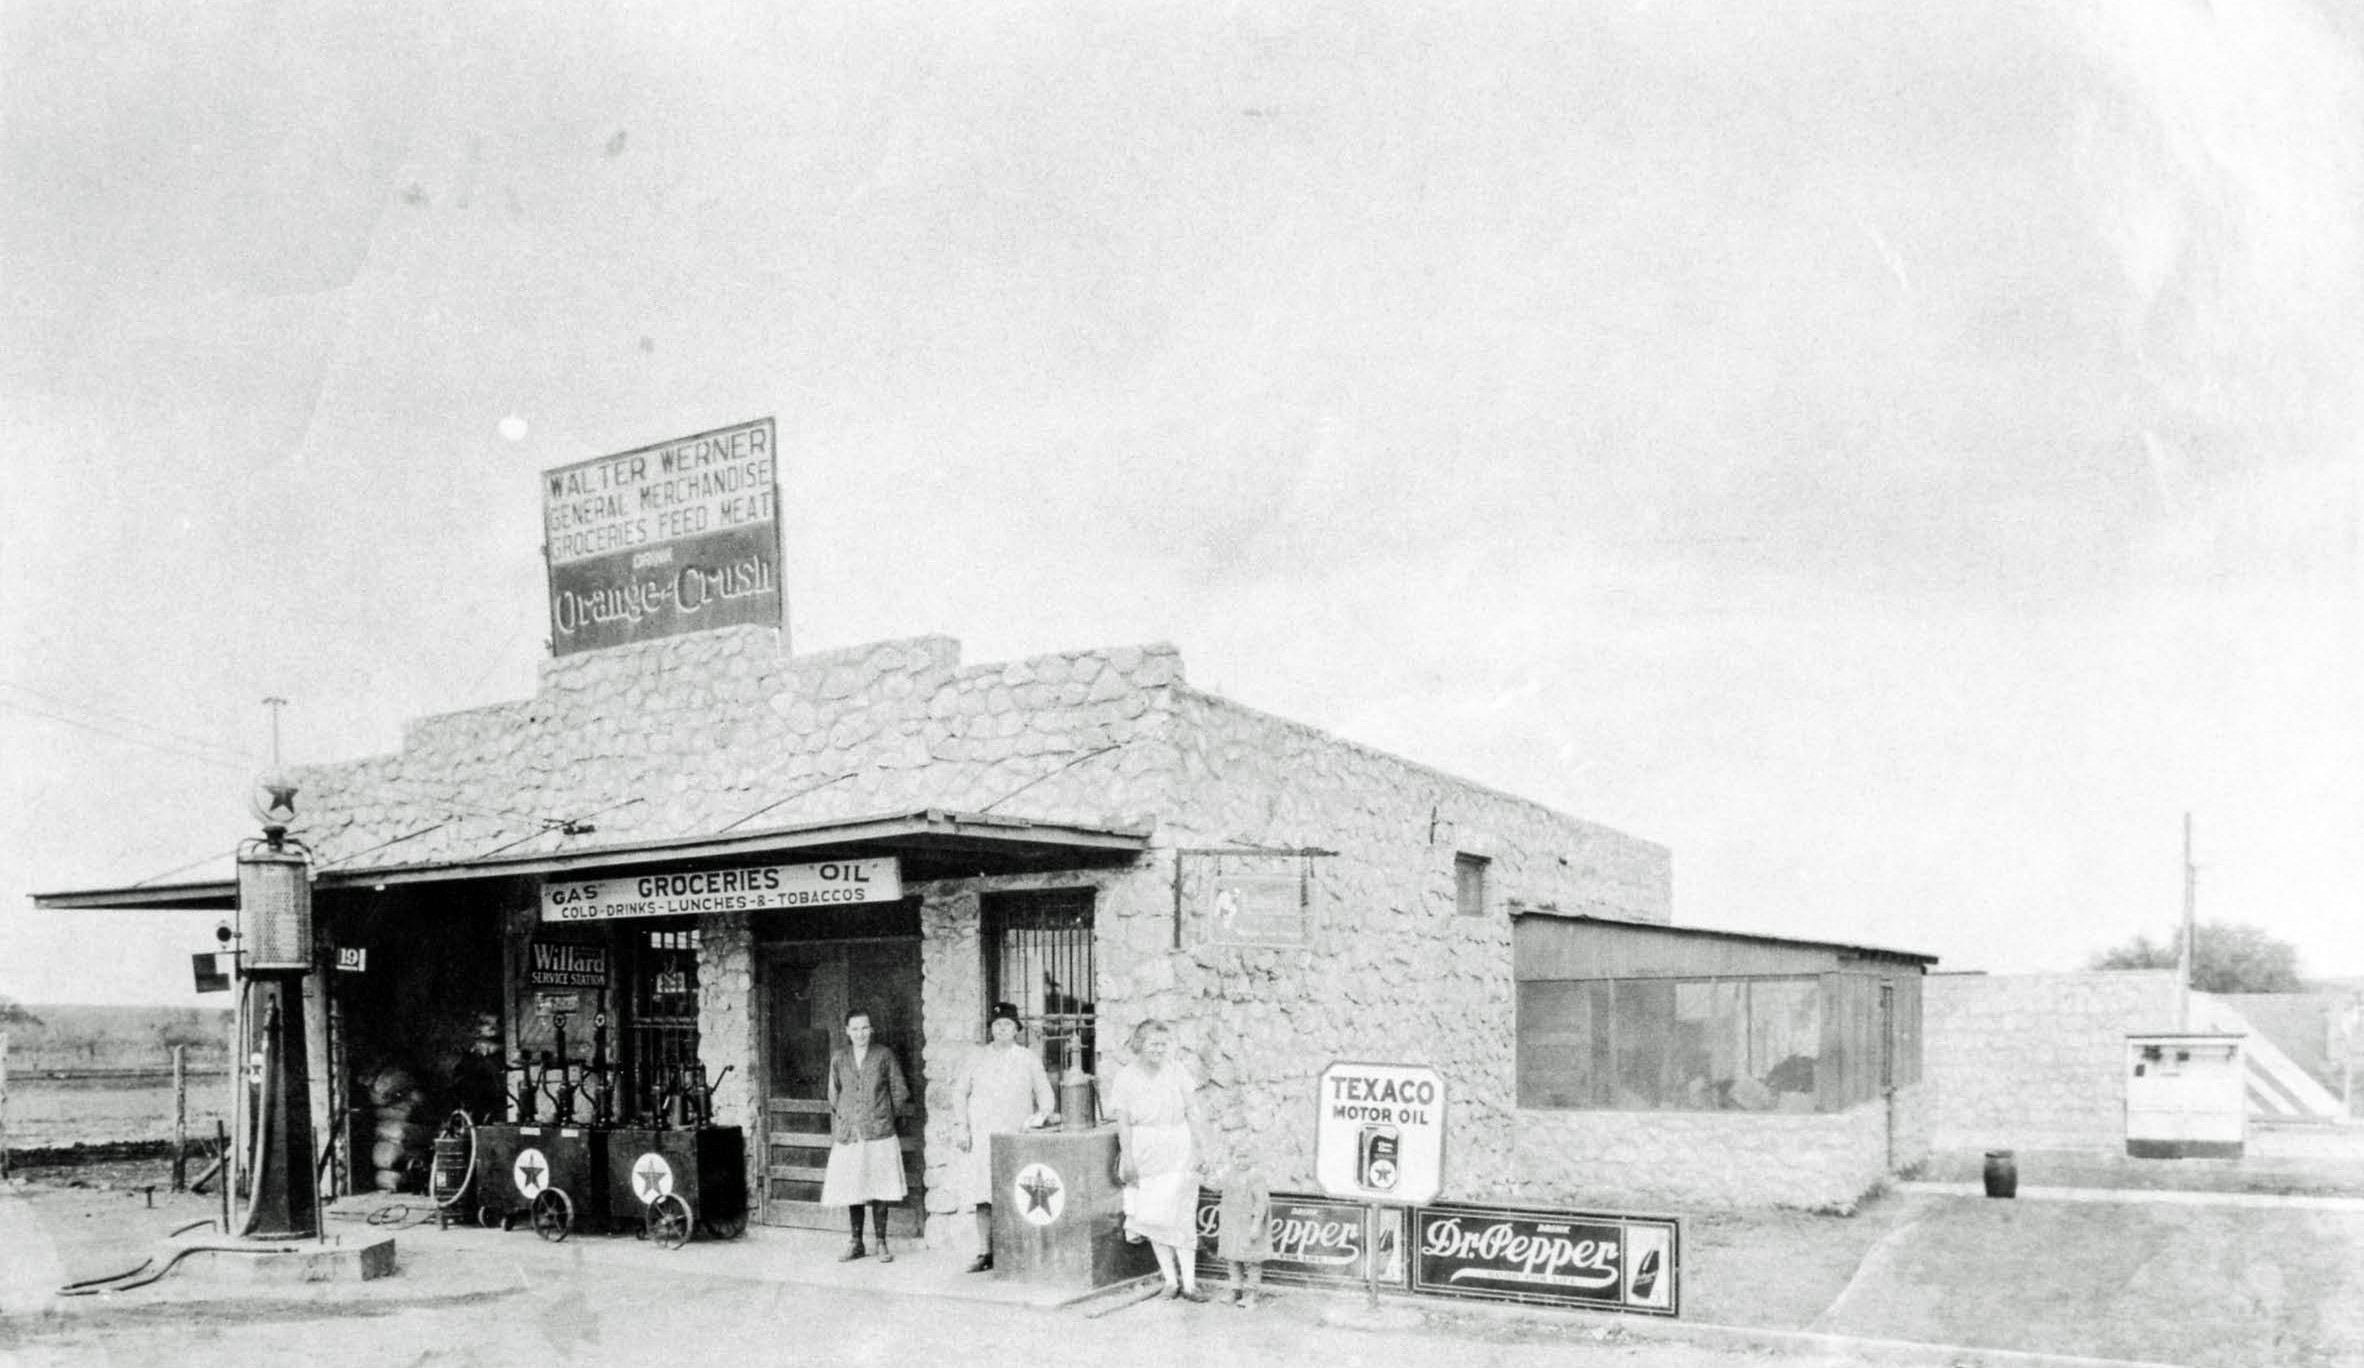 Werner Store - circa 1930 (became Gerfers 